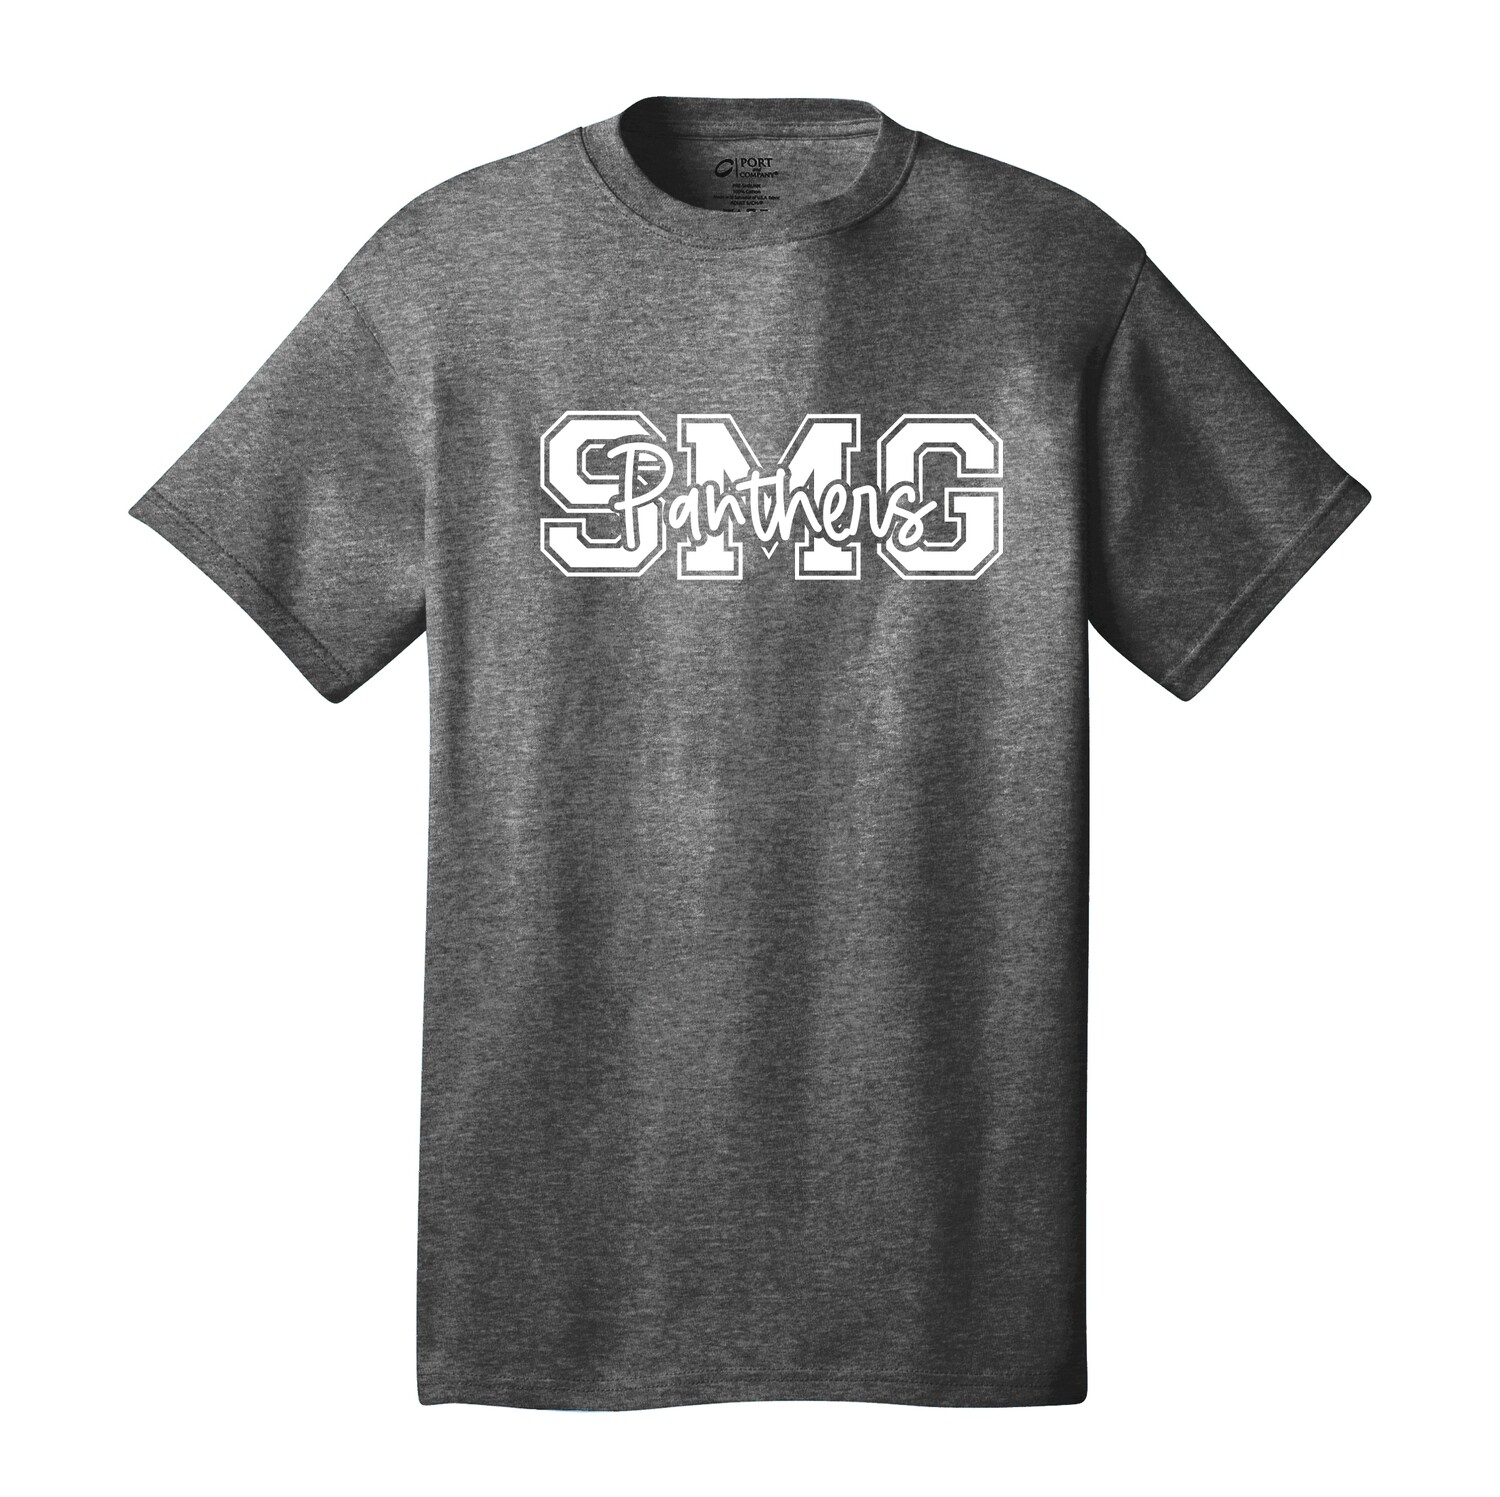 *New 2021 Design* SMG Panthers